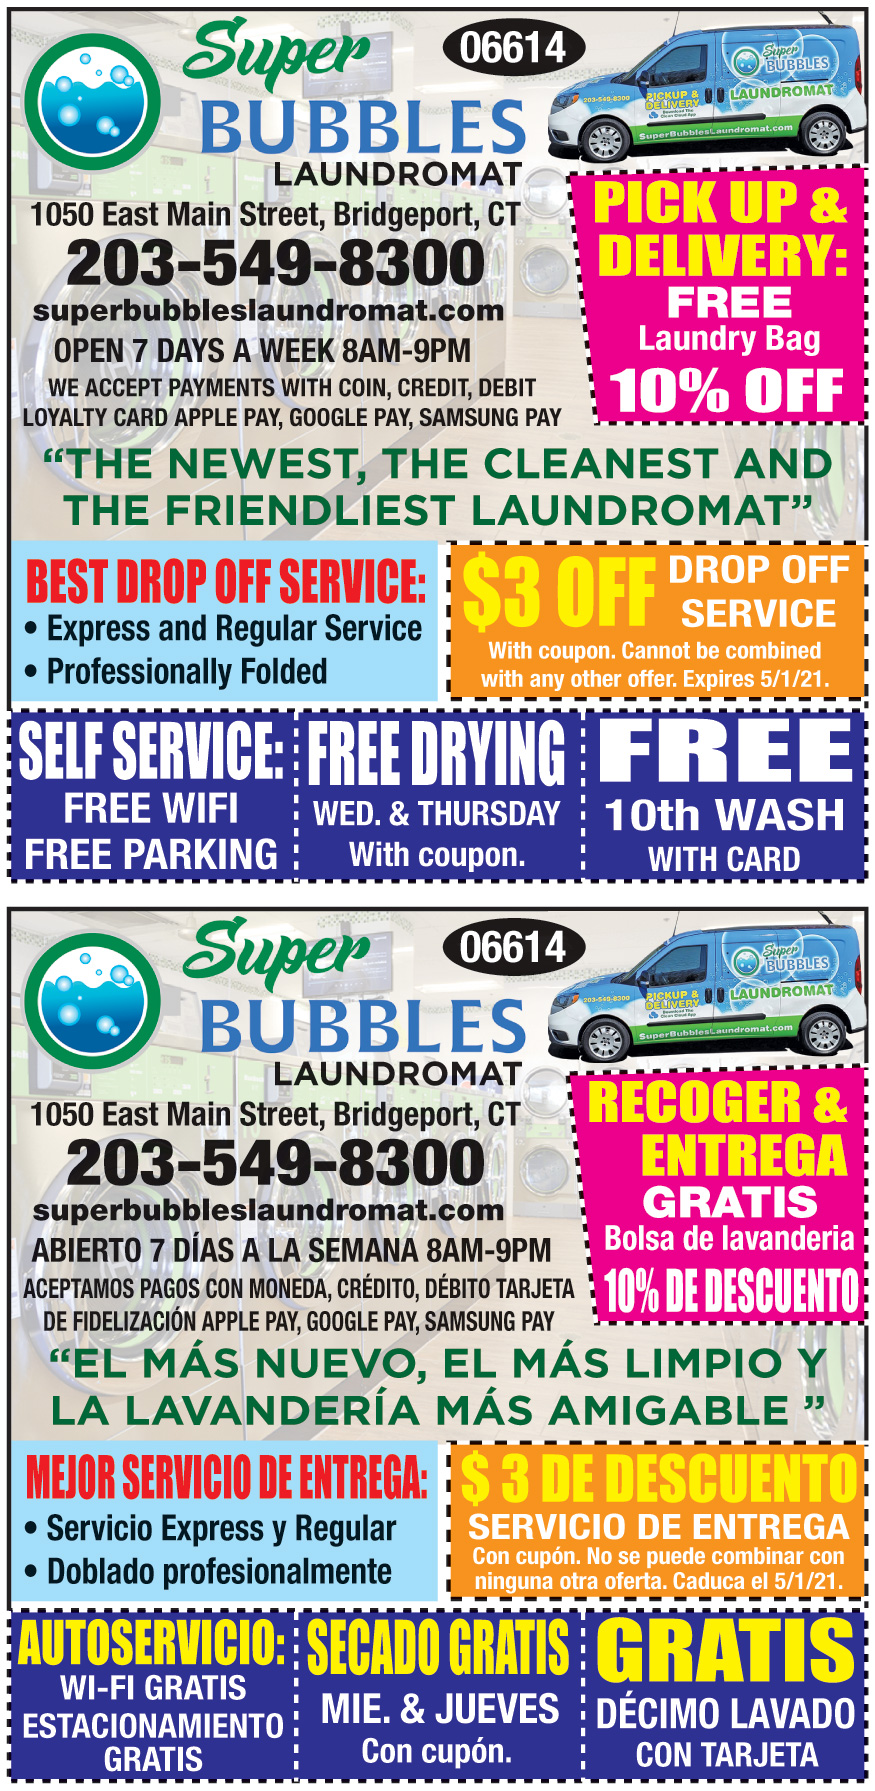 SUPER BUBBLES LAUNDROMAT